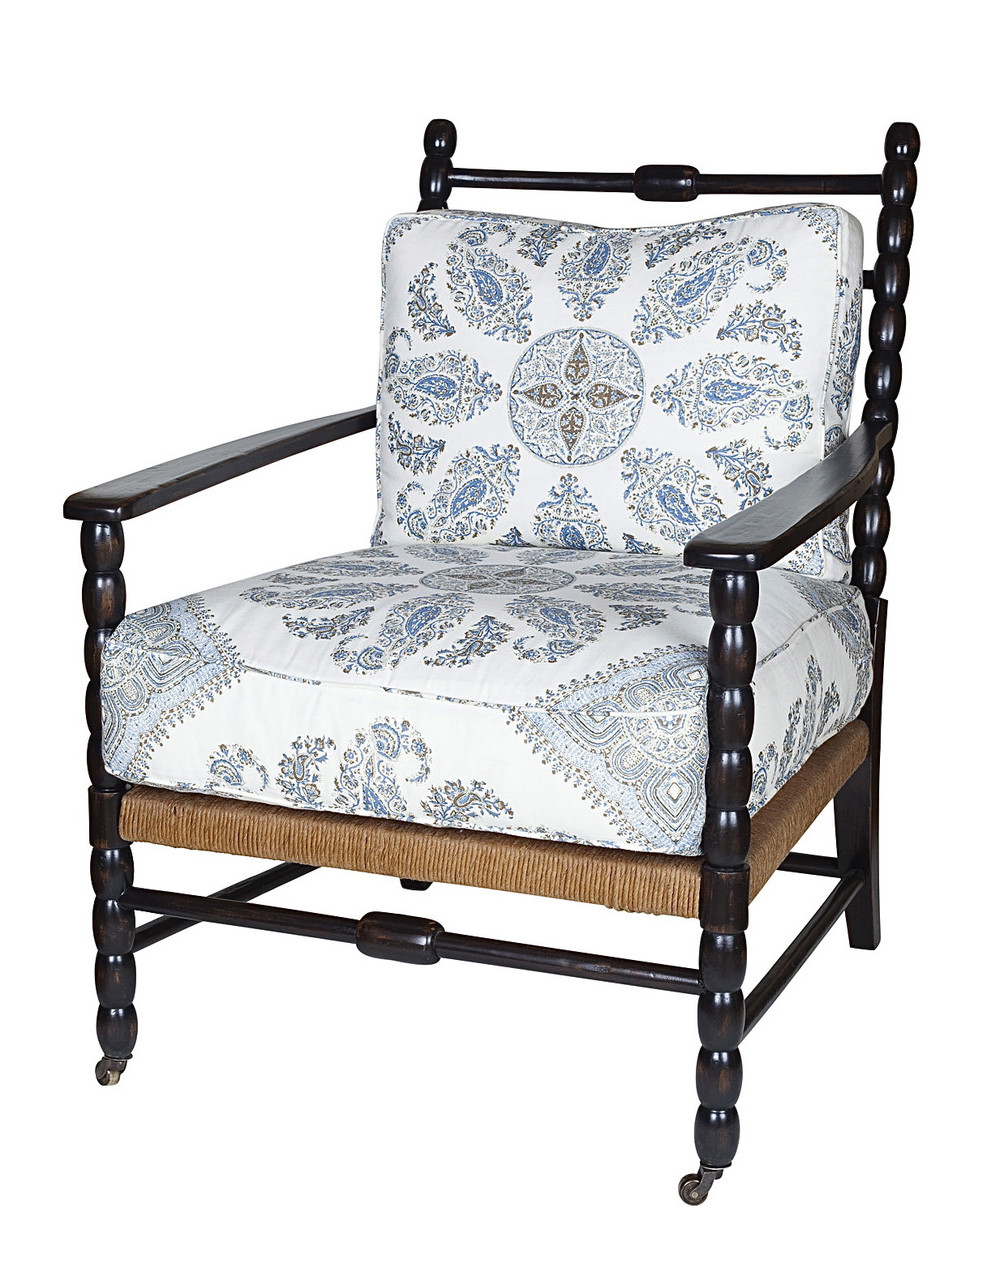 Nantucket chair with custom white and blue fabric